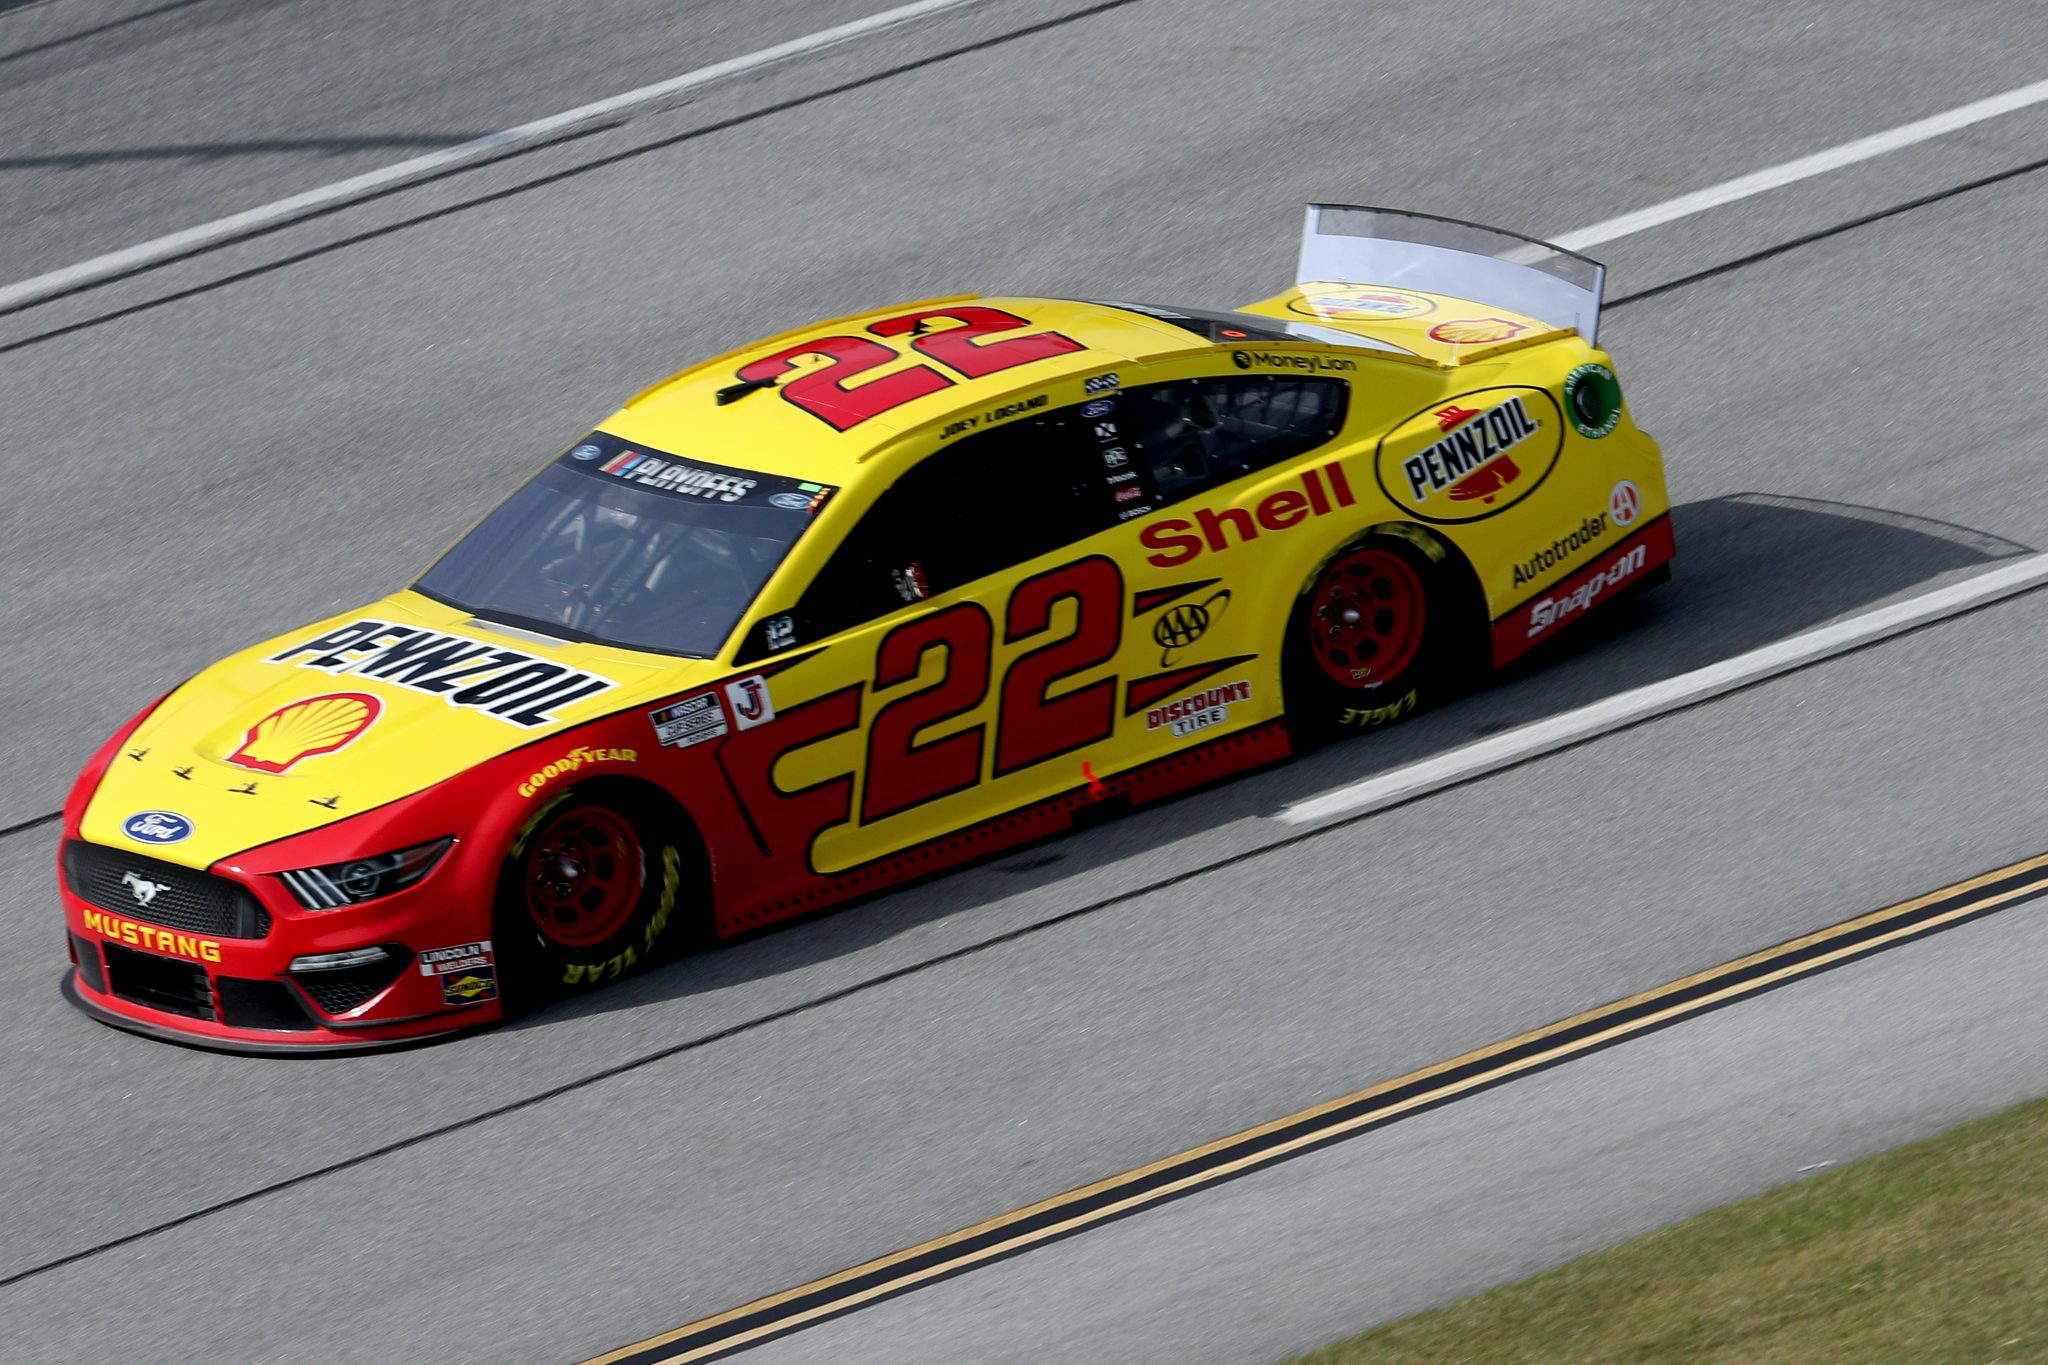 TALLADEGA, ALABAMA - OCTOBER 04: Joey Logano, driver of the #22 Shell Pennzoil Ford, drives during the NASCAR Cup Series YellaWood 500 at Talladega Superspeedway on October 04, 2020 in Talladega, Alabama. (Photo by Chris Graythen/Getty Images) | Getty Images